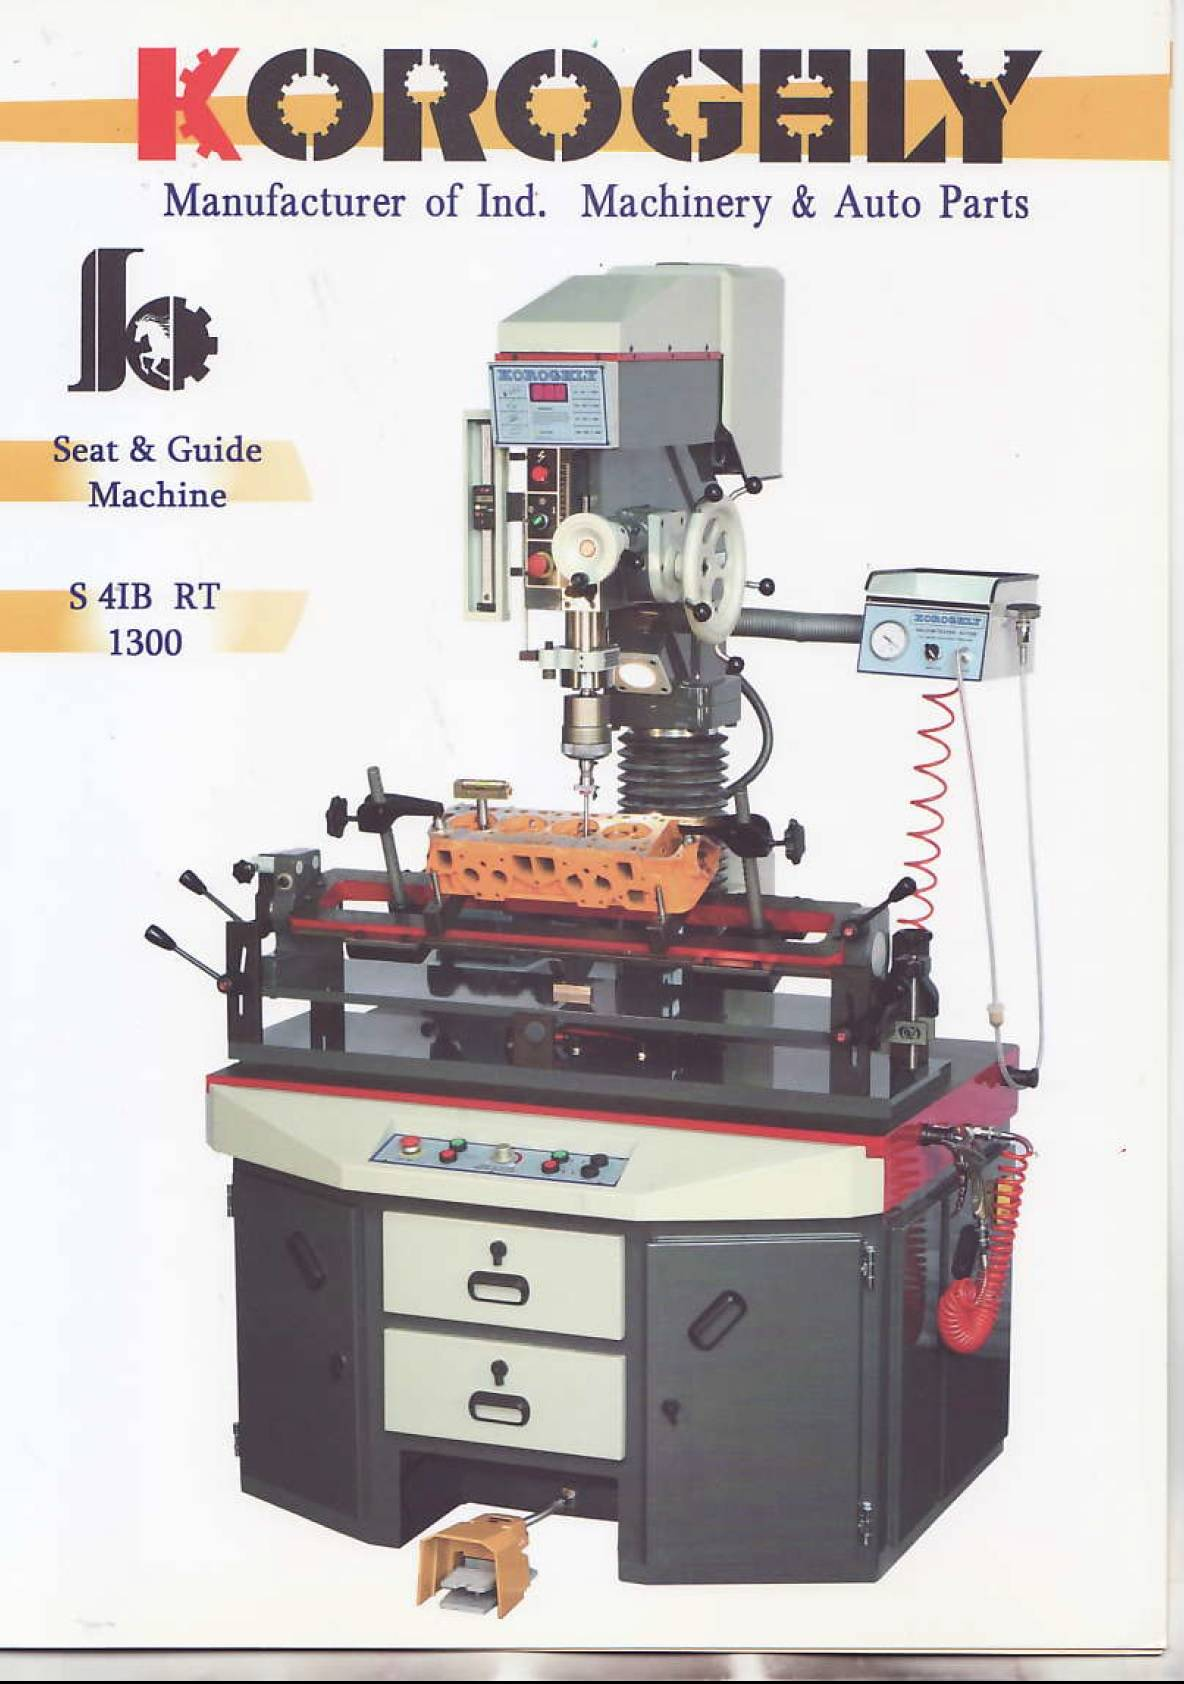 valve seat& Guide machine